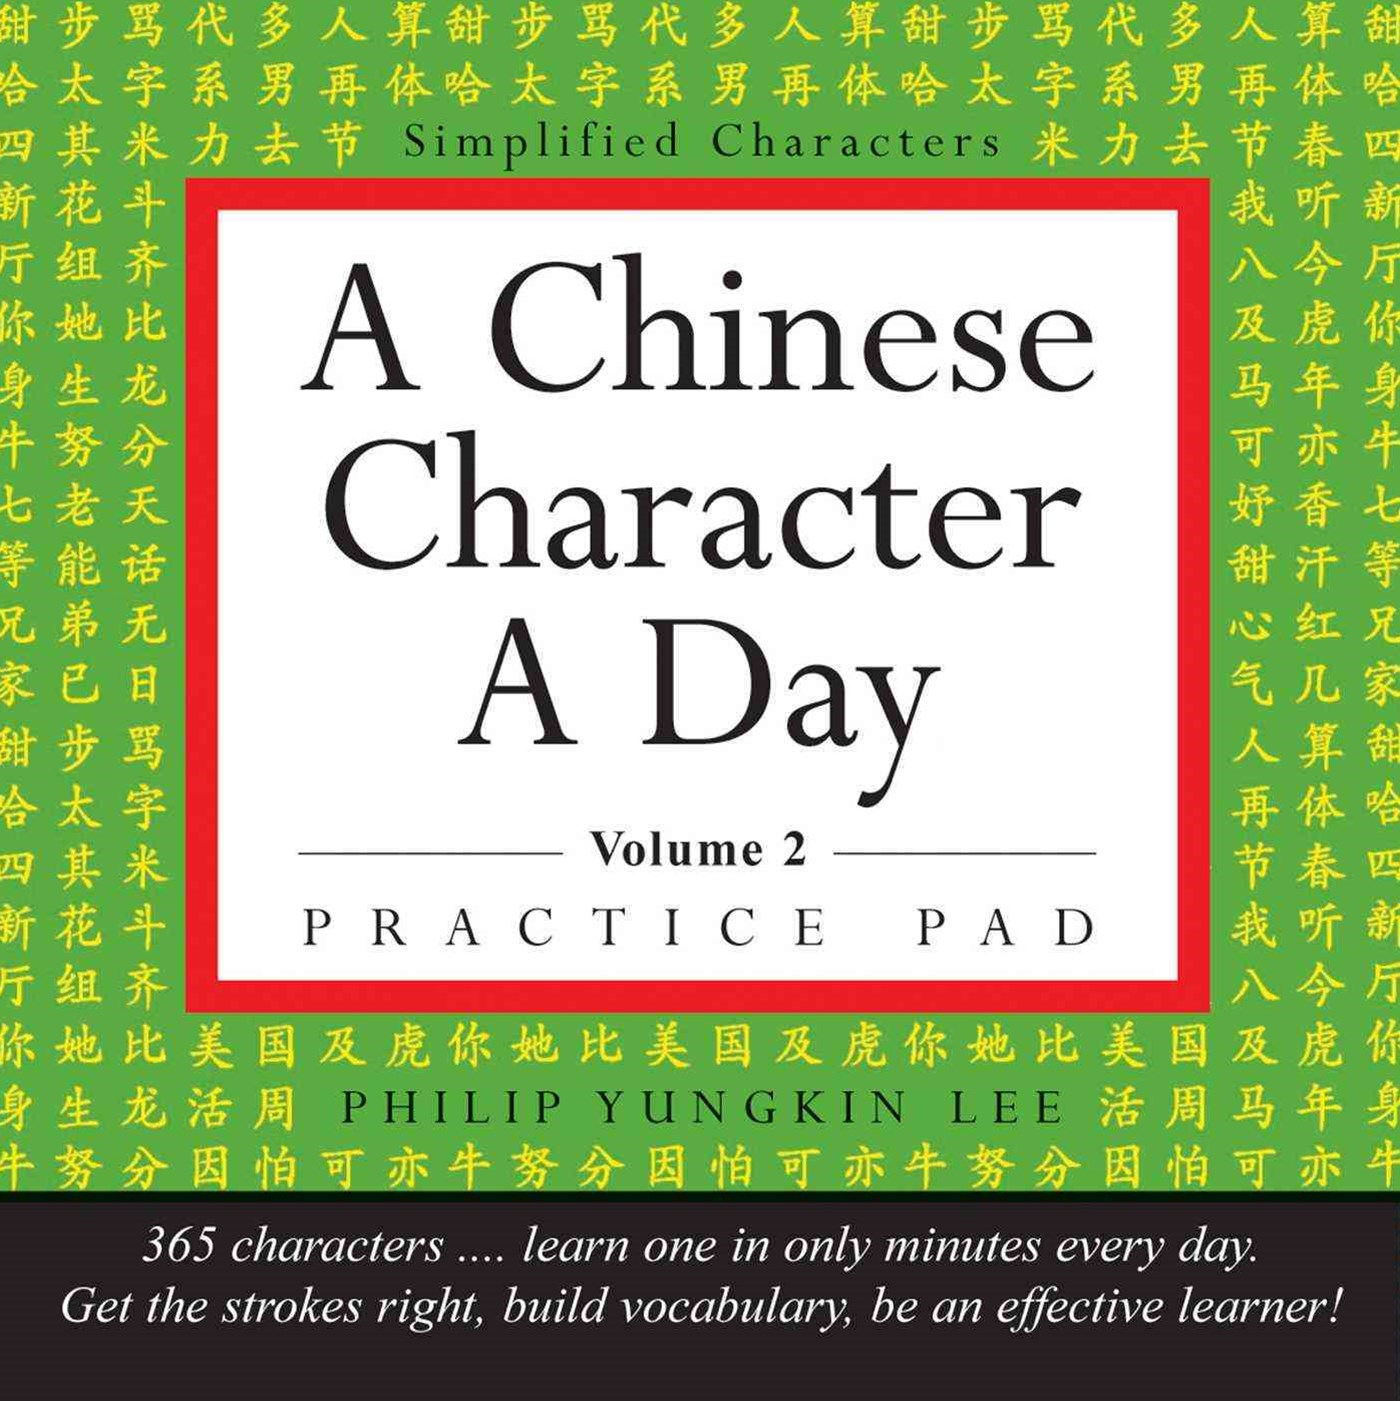 Chinese Character a Day Practice Pad Volume 2